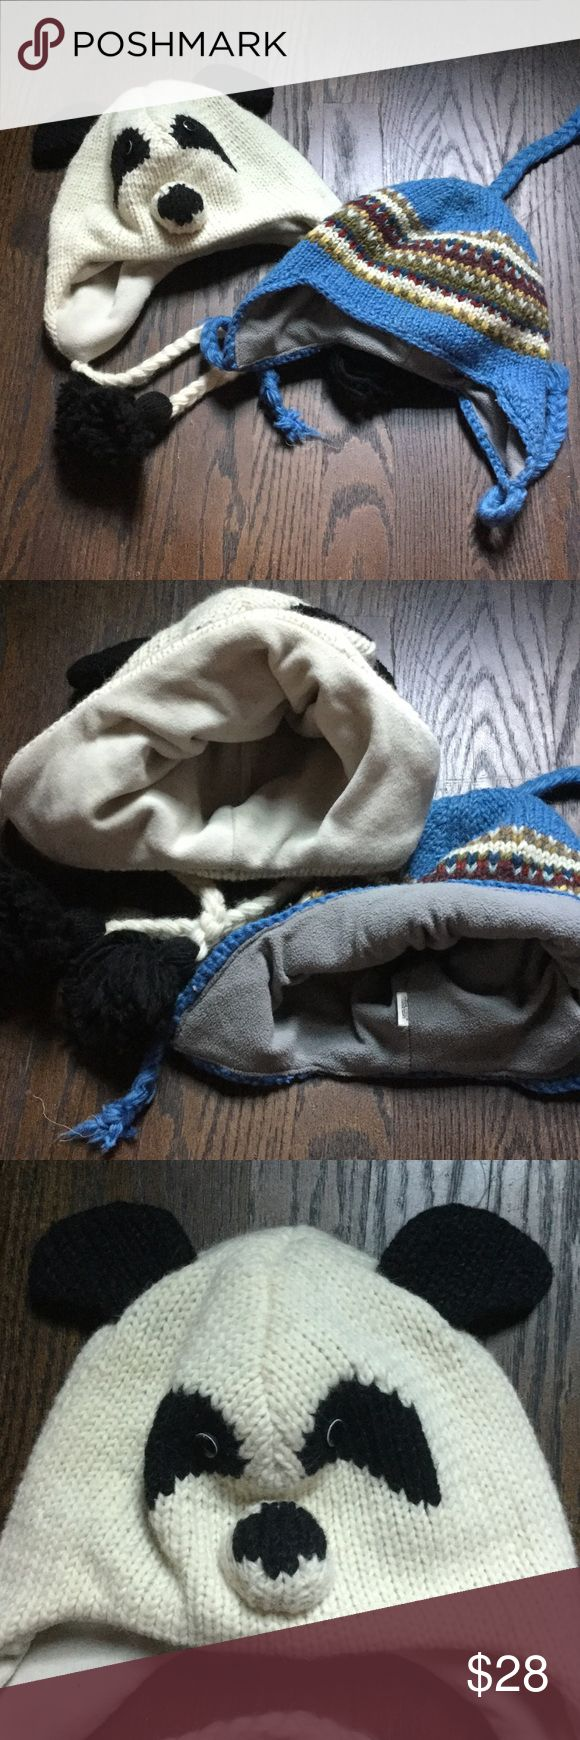 "Pre-ski sale! Handmade hats!  Kid/adult size. Wear this, like this…PRE-SKI SALE! Stay toasty and warm with these handmade boutique hats. 100% wool exterior naturally repels water. Fleece lining is soft and itch free. Both like new. ""Animal"" hat is natural ivory with black and ""Nordic"" blue is a mid tone blue gray with multi colored pattern. Both fit a large child or small adult. Animal hat fits up to a 23 inch circumference and Nordic hat fits up to a 21 inch circumference. Feel free to ask…"